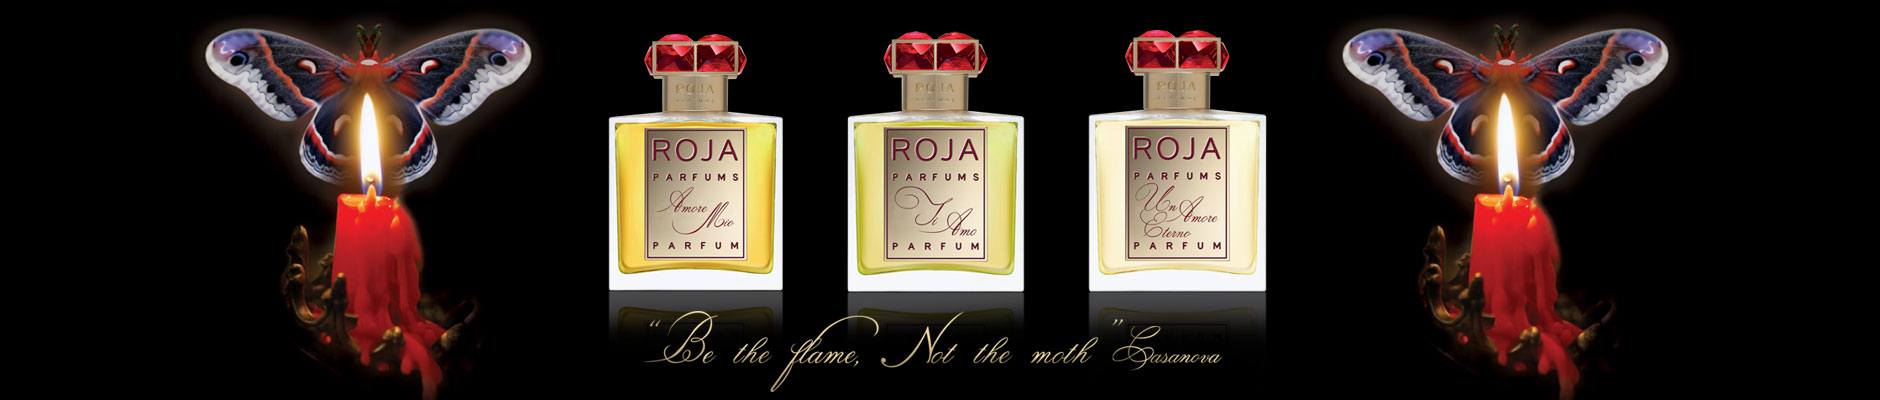 Roja Parfums: Be the flame, Not the moth - Casanova